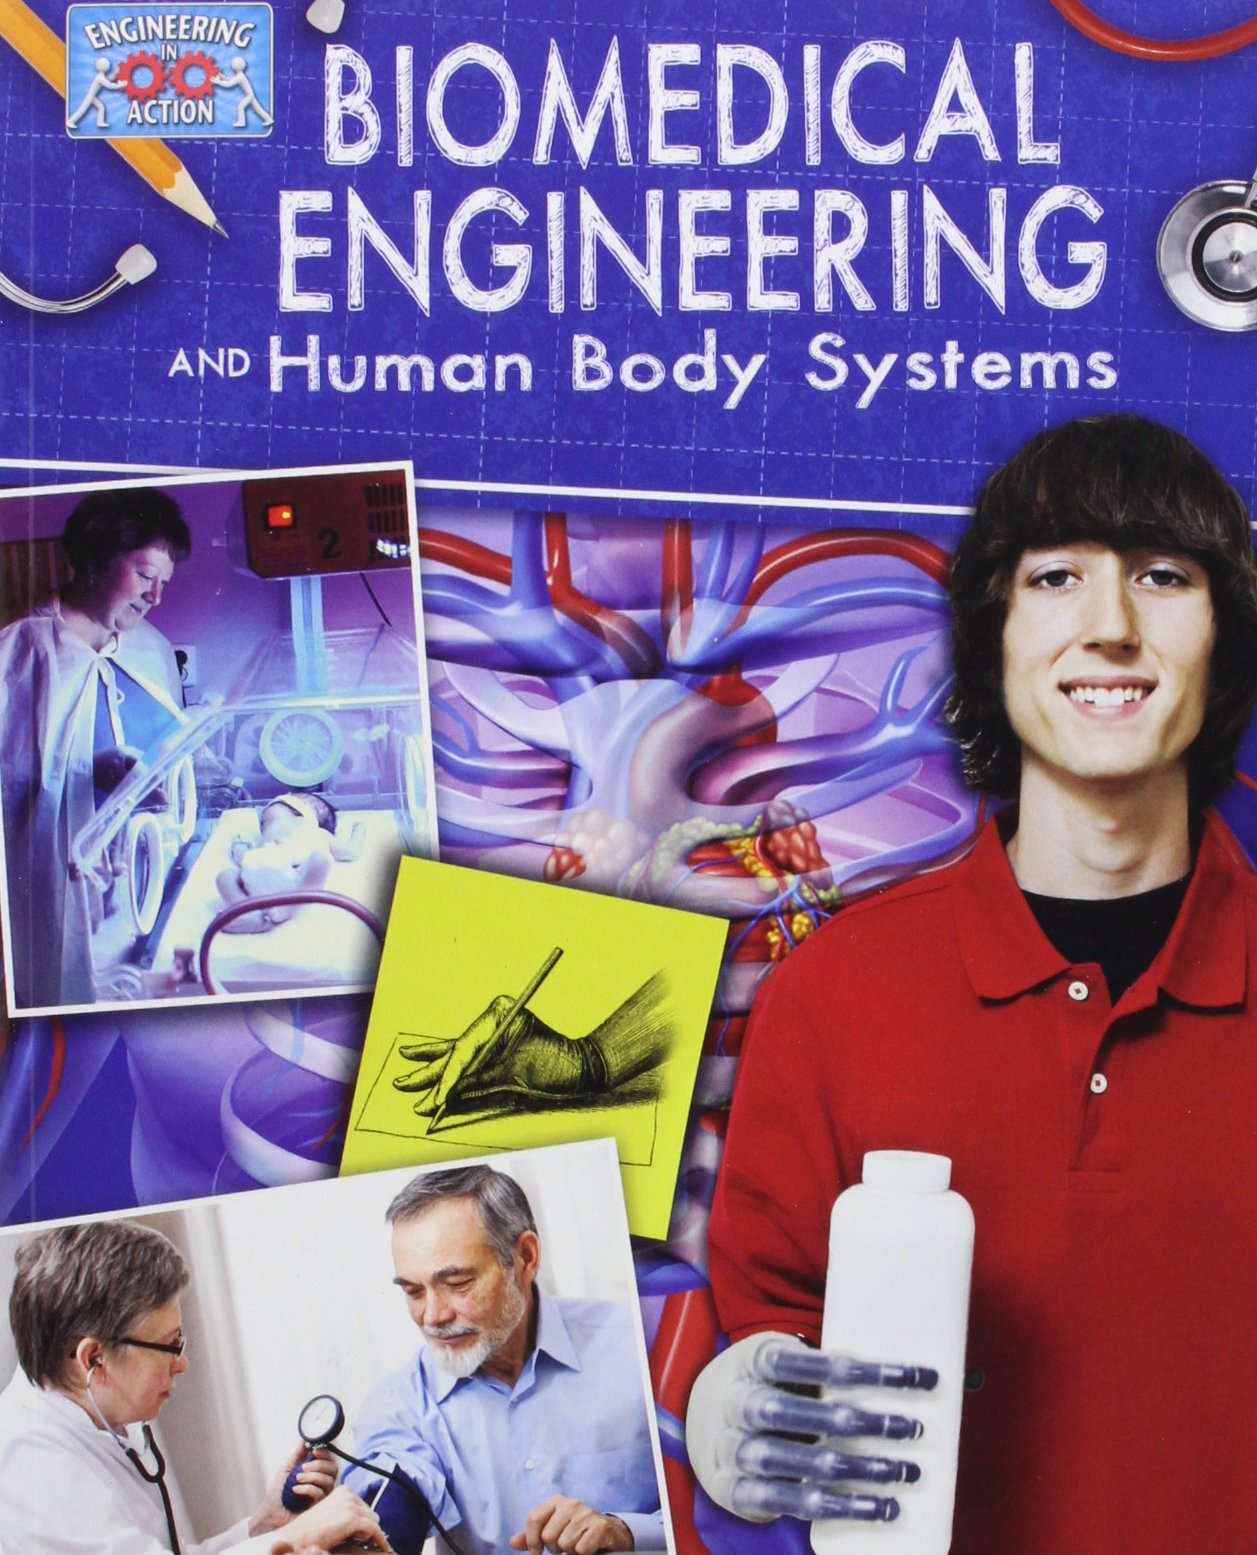 Download Biomedical Engineering and Human Body Systems (Engineering in Action) ebook